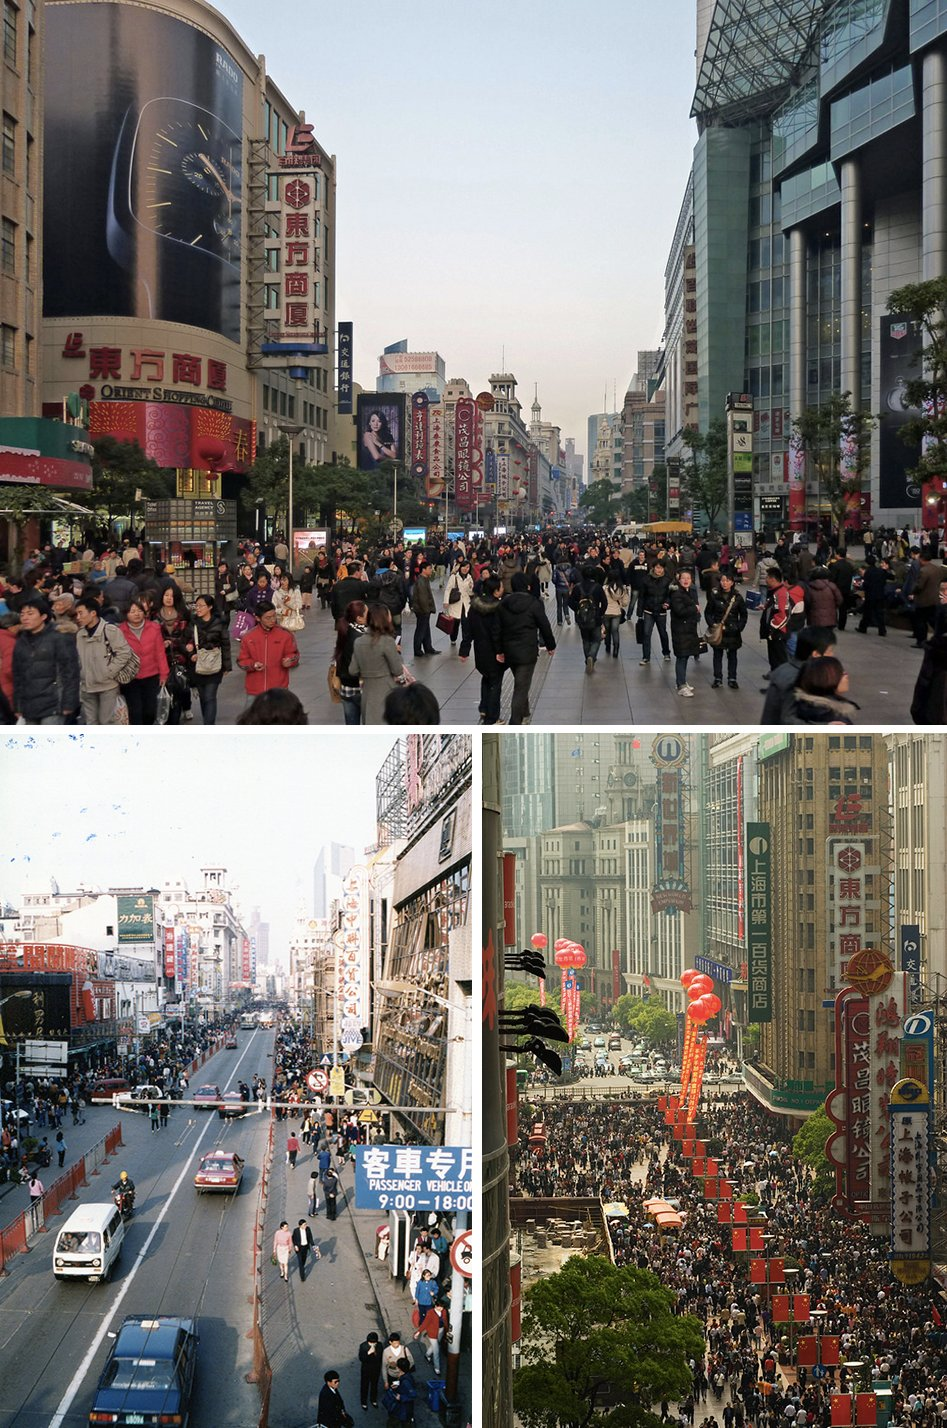 Composite image showing Nanjing Road, pedestrian shopping district in 2010, 2001 and 1993.